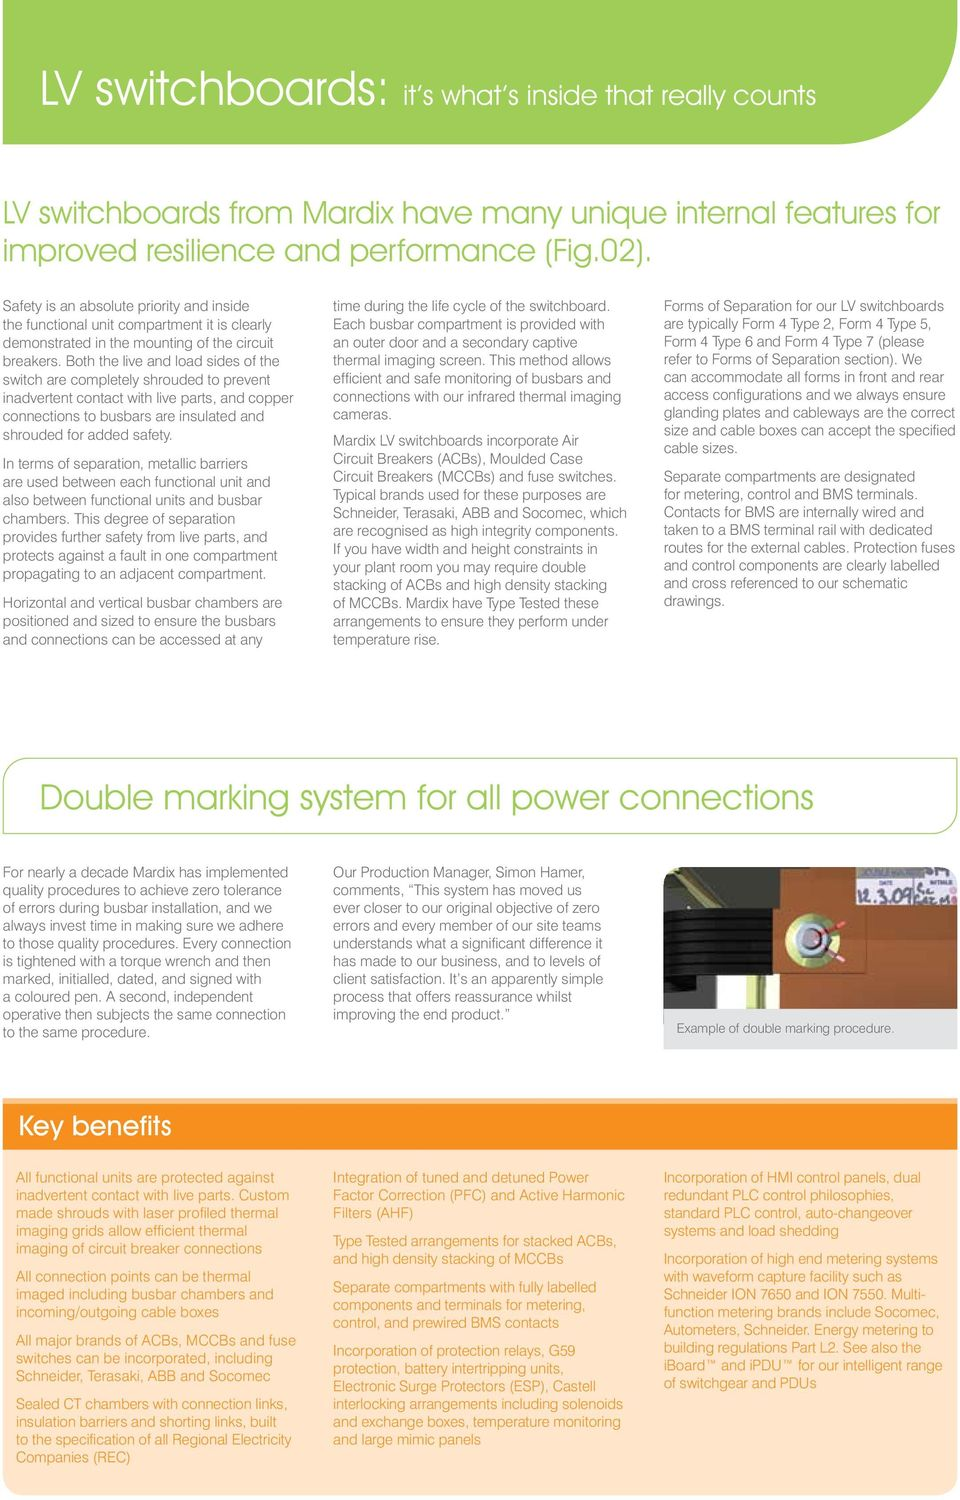 LV switchgear  Industry leading technology from Mardix  The